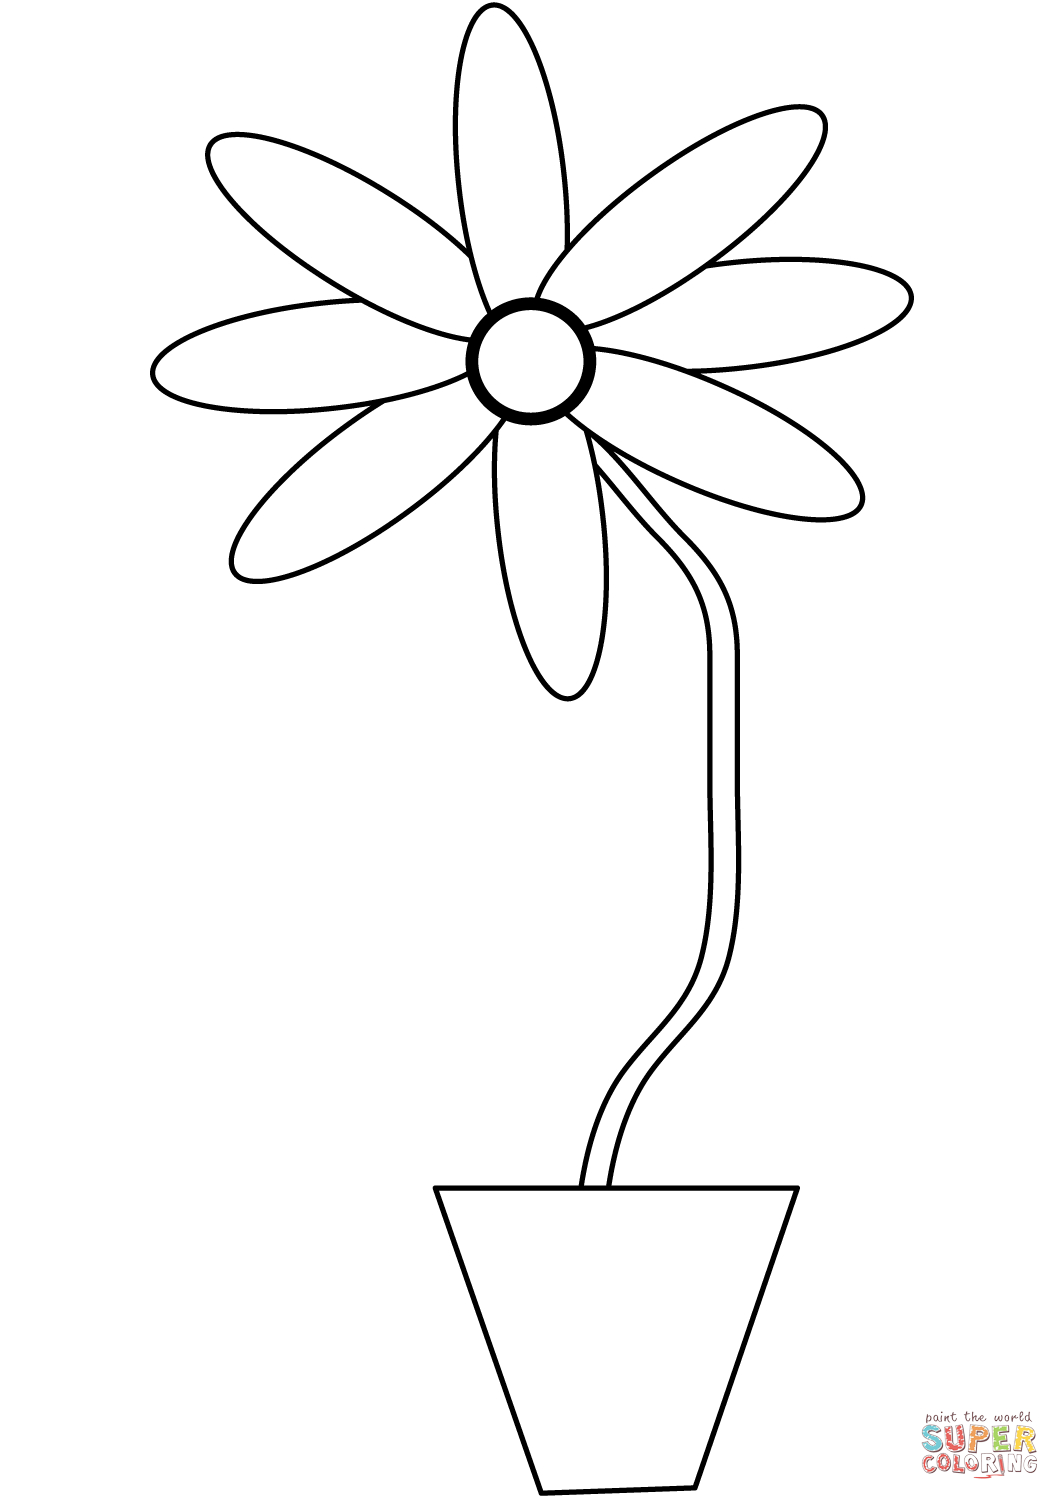 image about Printable Flower Pot identify Flower Pot Coloring Webpage Flower Inside of A Pot Coloring Website page No cost